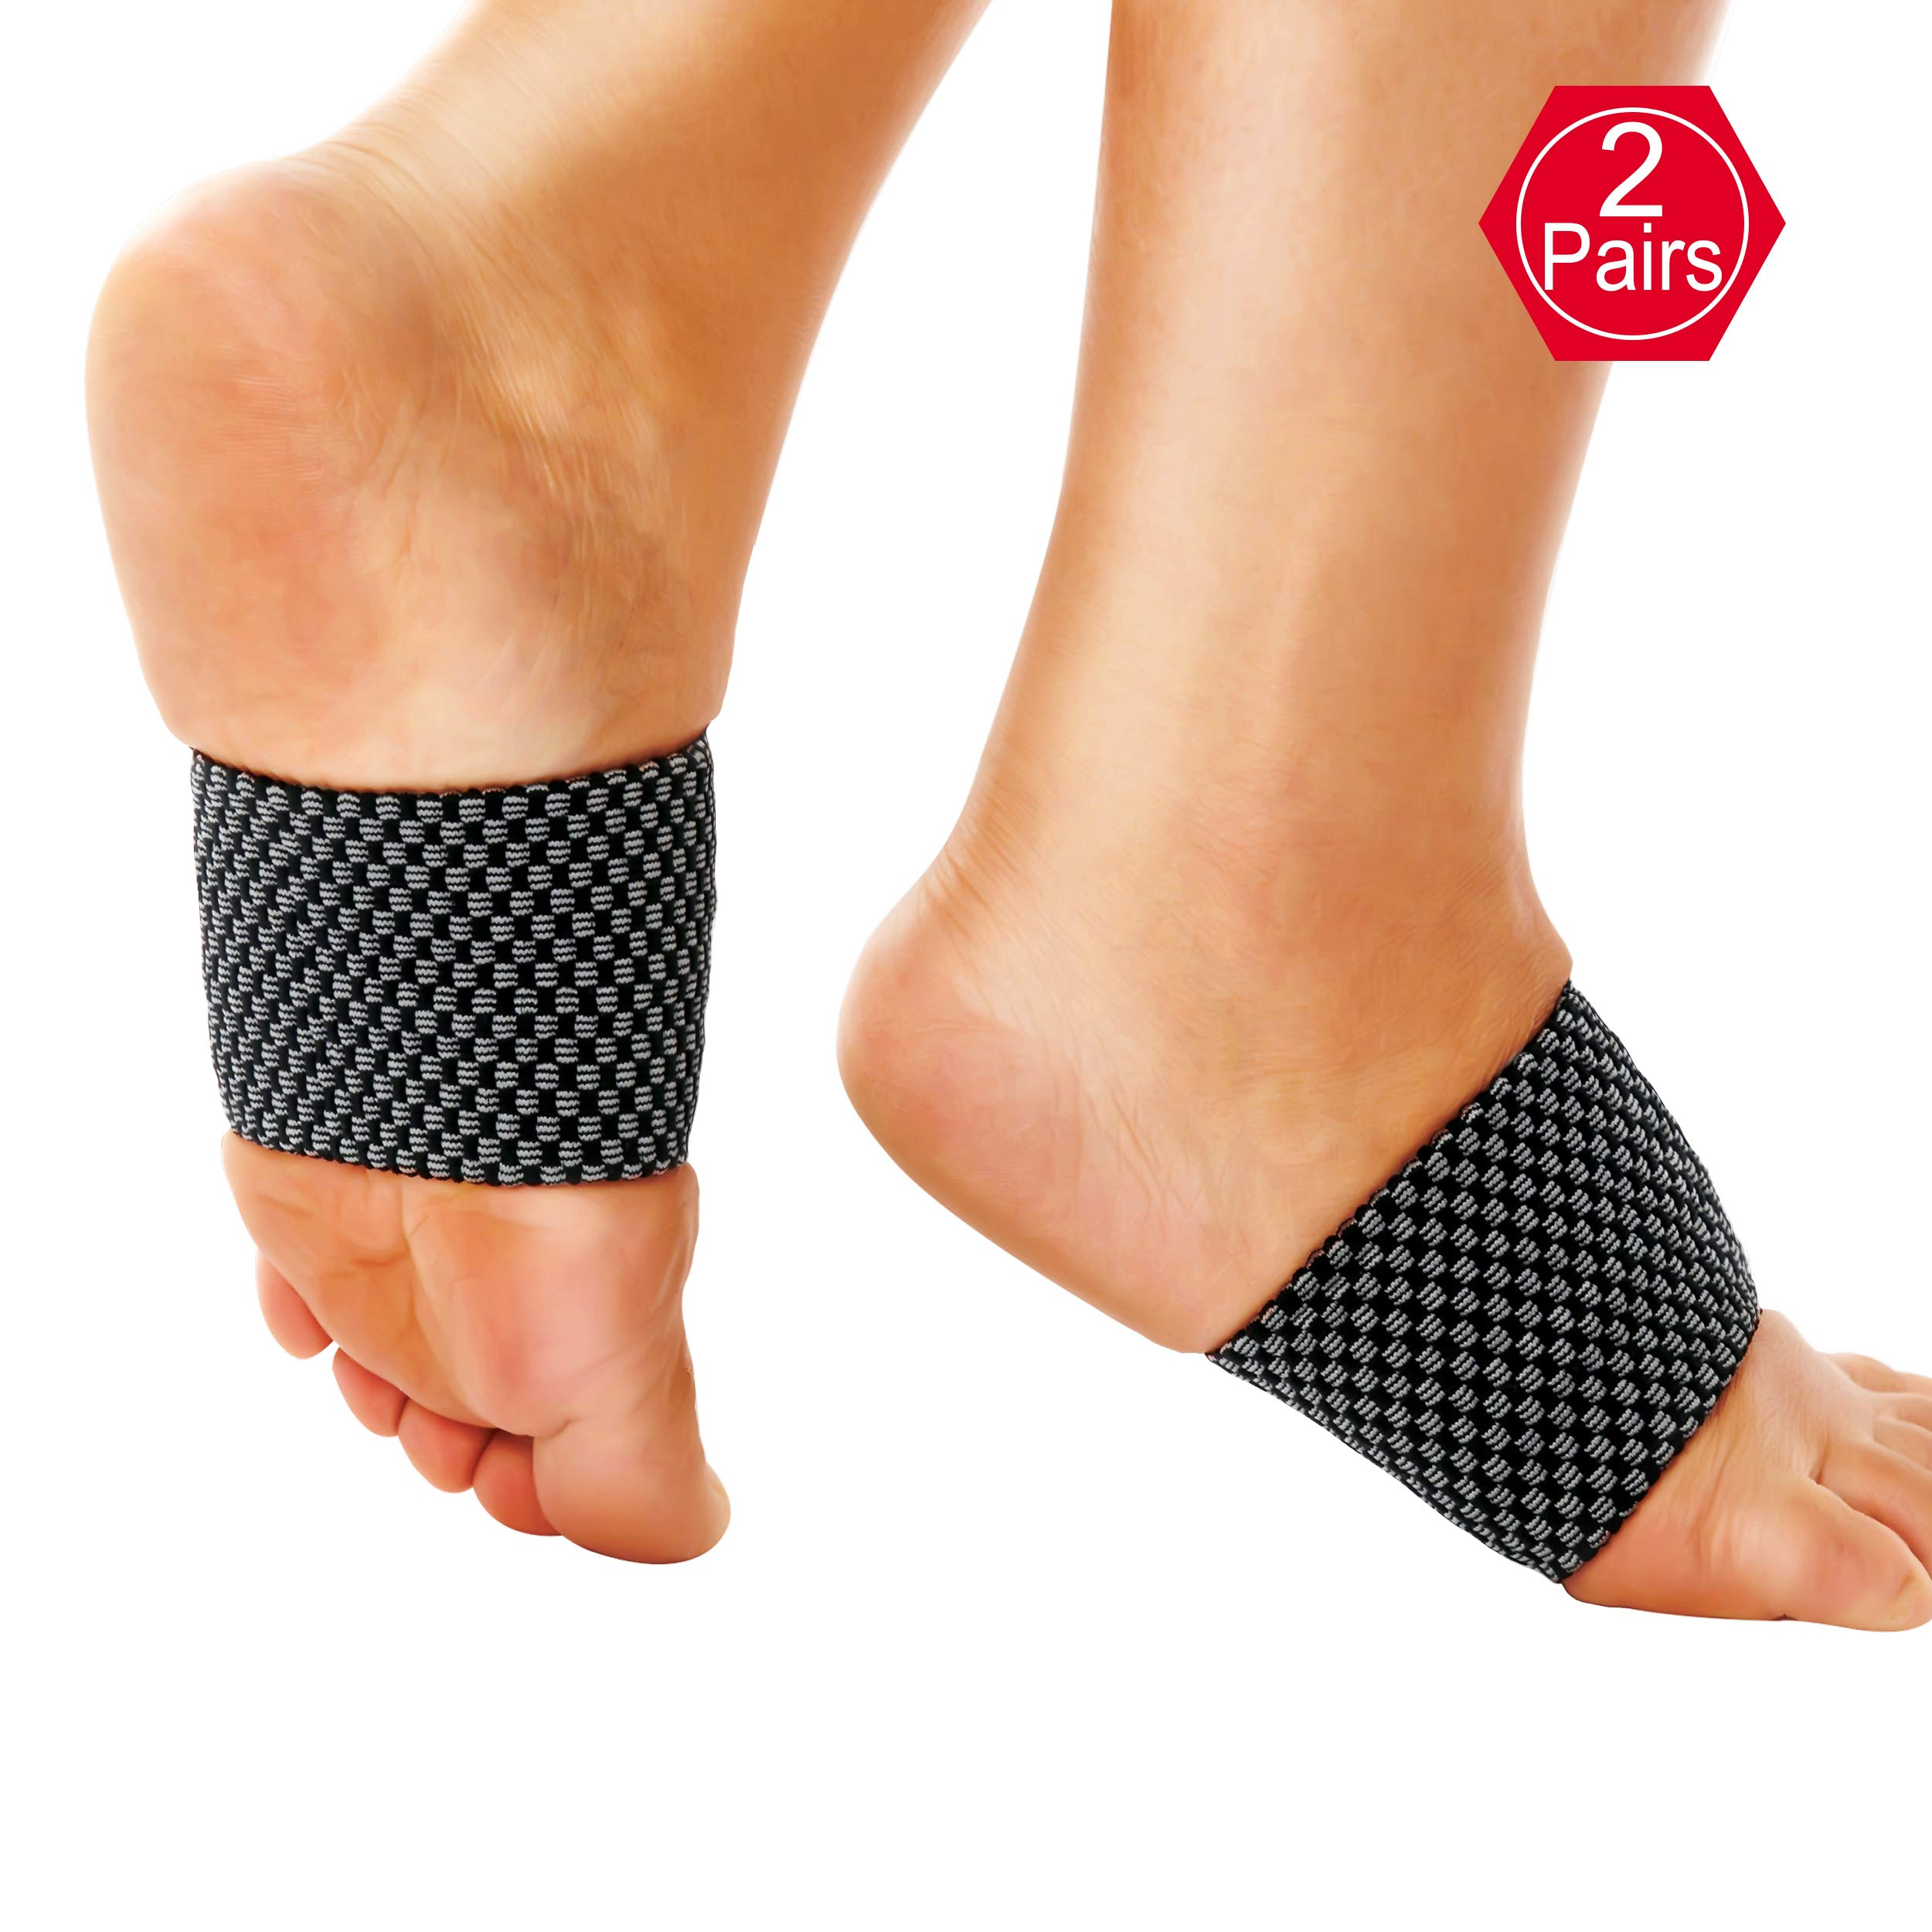 EHbee Foot Arch Support Brace, 2 Pairs Plantar Fasciitis Sleeve, Fallen Arch Compression Strap Band Mens Womens, Best Pain Relief, Heel Spurs, Flat Feet, High Arches Size L